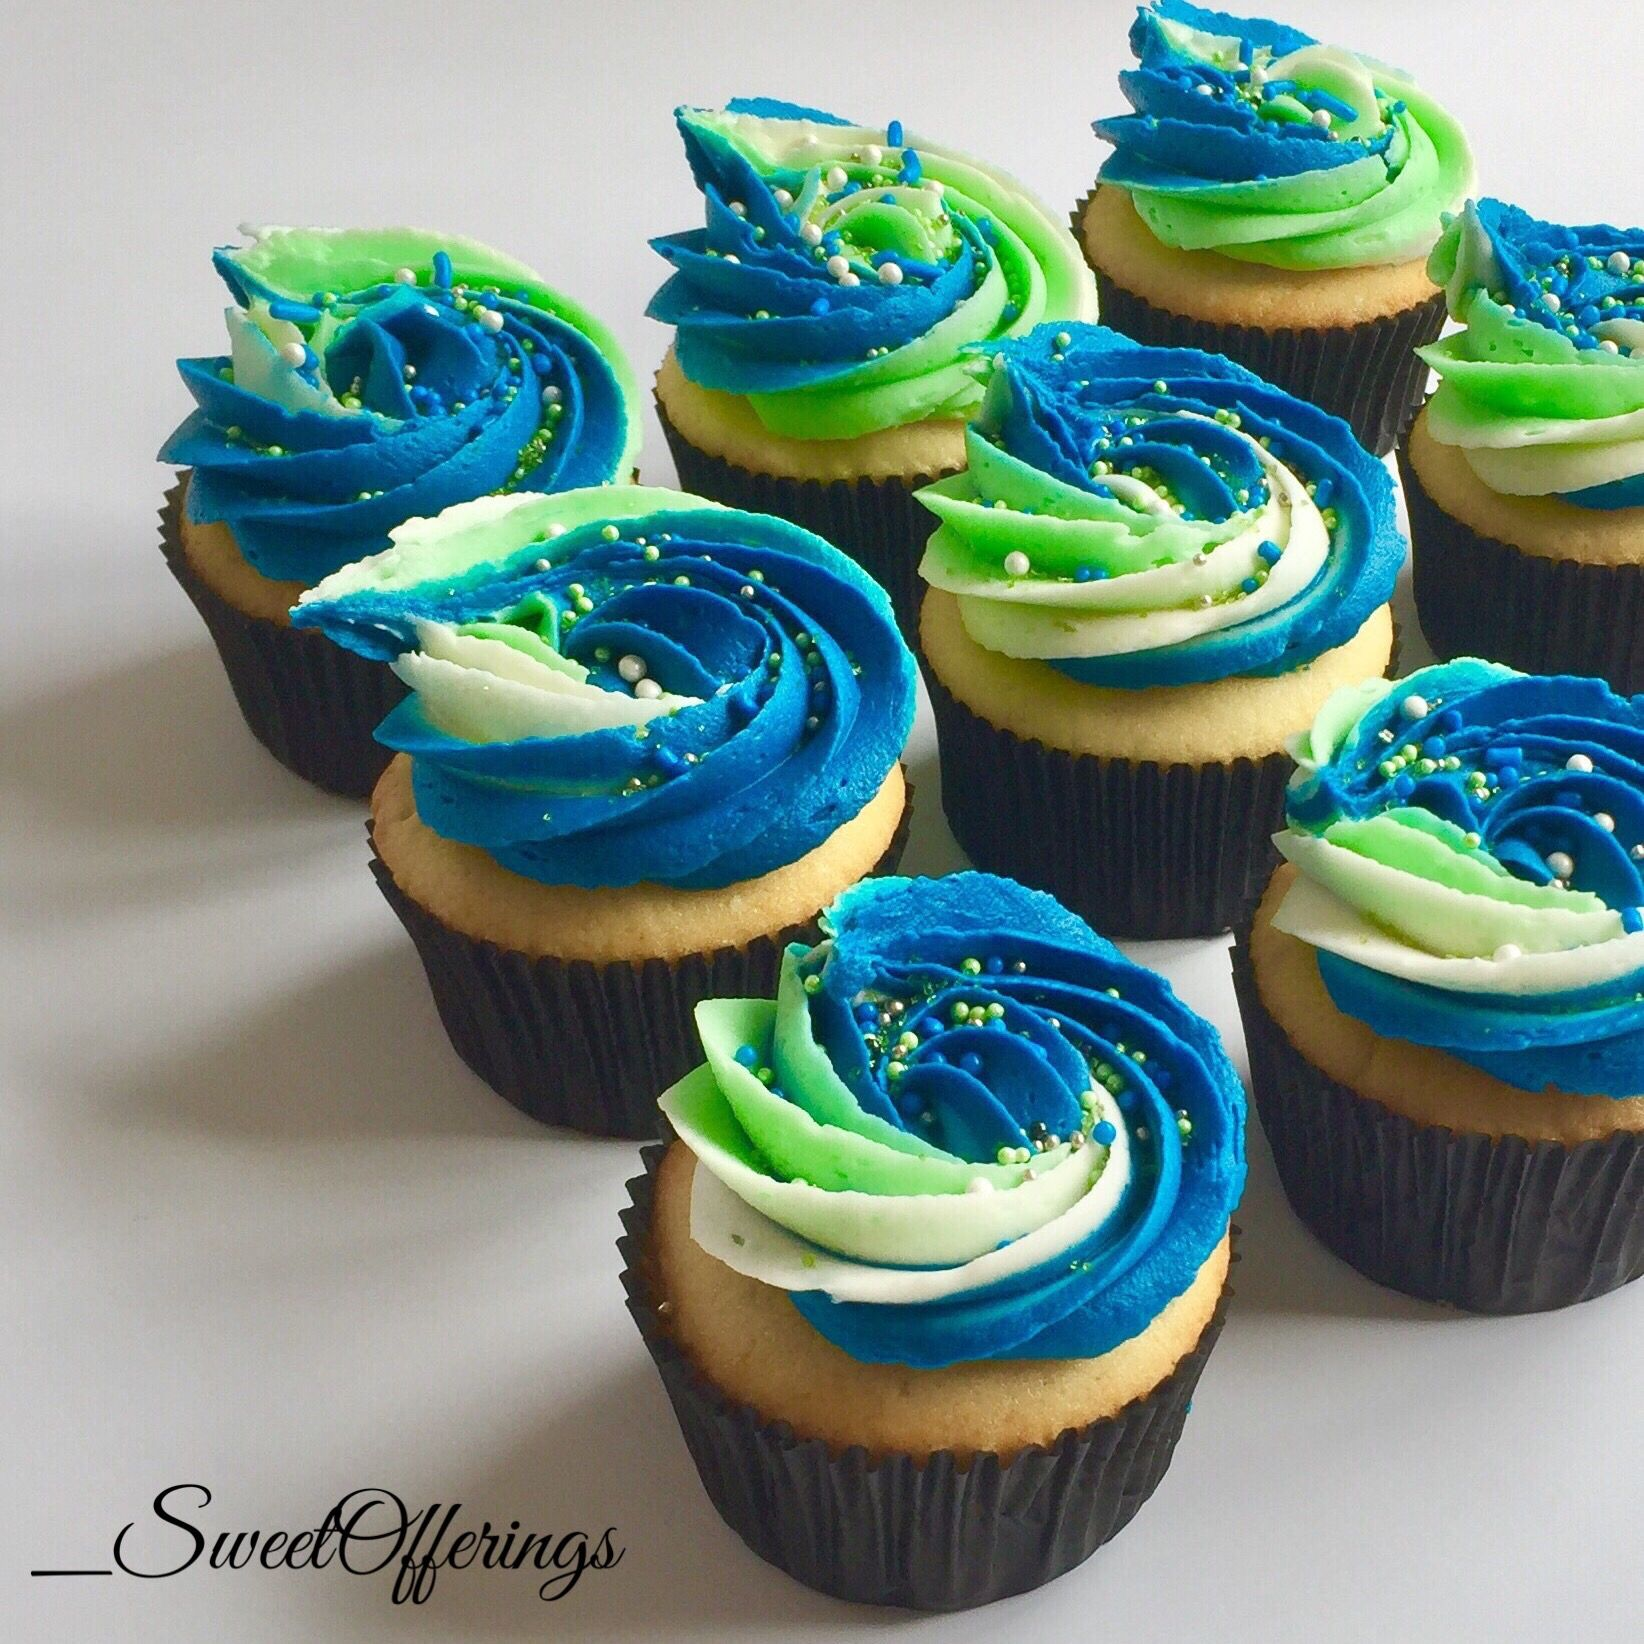 Marvelous Vanilla Cupcakes Blue And Green Cupcakes Sprinkles Birthday Party Funny Birthday Cards Online Bapapcheapnameinfo